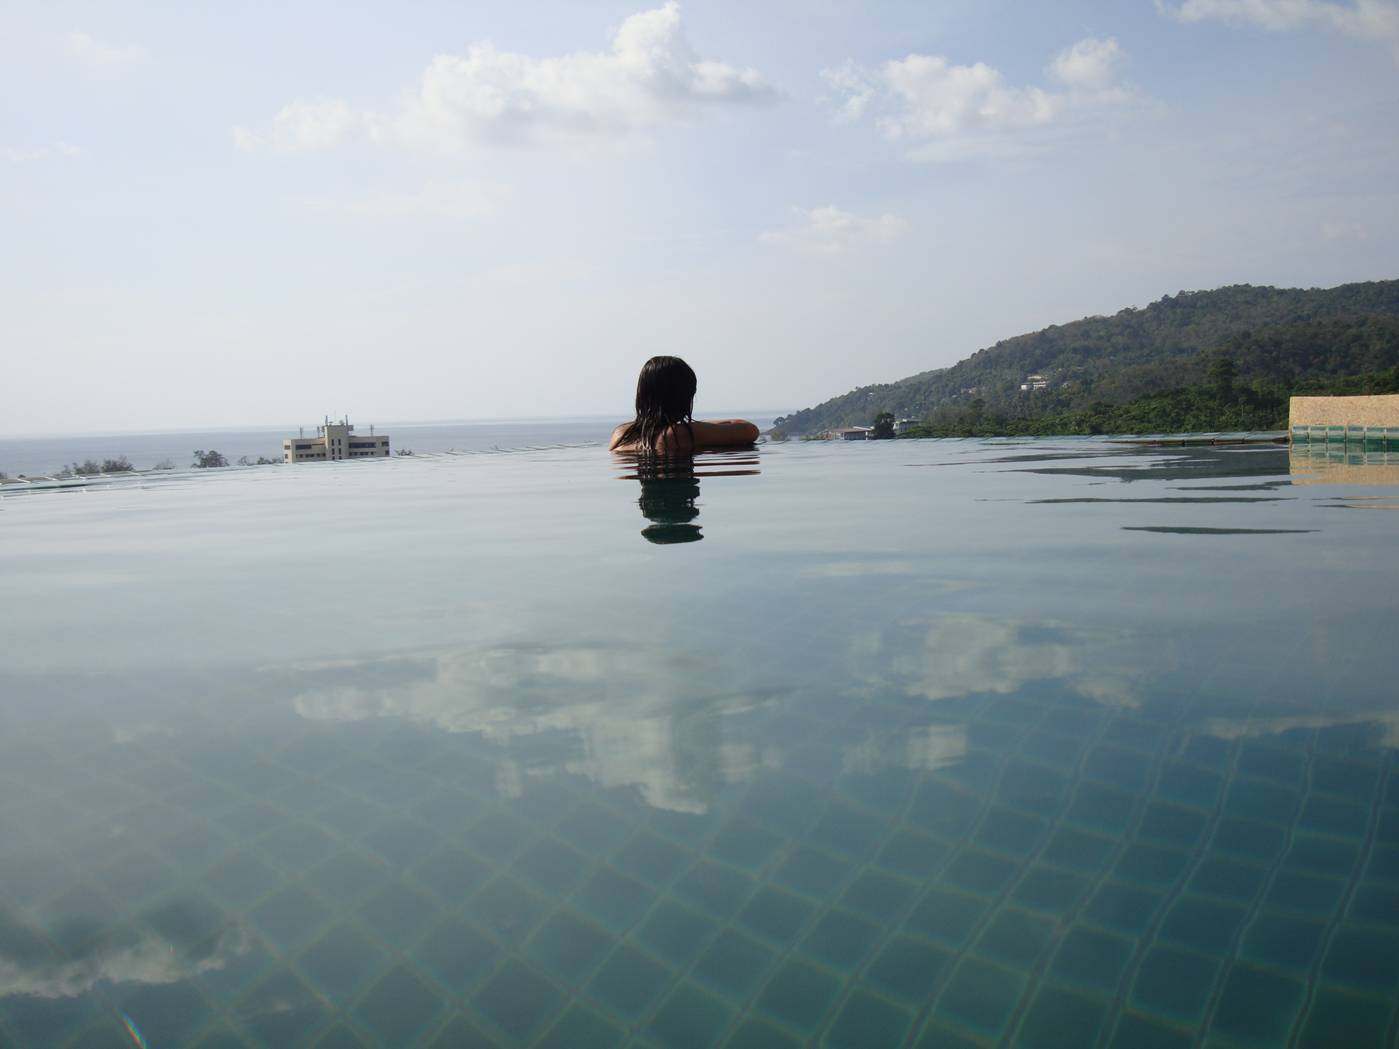 Picture:  Naam contemplates infinity in the infinity pool on the roof of the villa.  Karon Beach, Phuket Island, Thailand